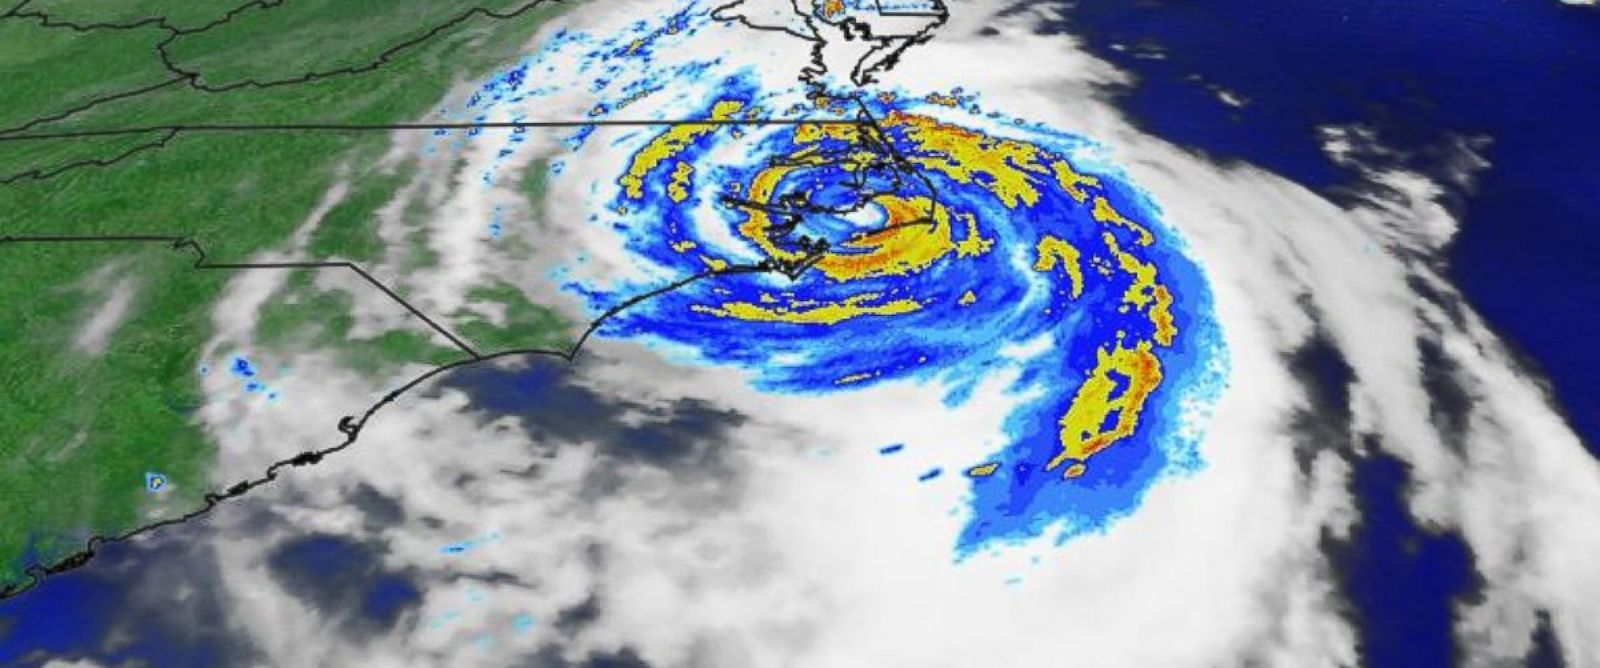 PHOTO: The eye of Hurricane Arthur made landfall at 11:15 p.m. on July 3, 2014 at Cape Lookout, North Carolina.